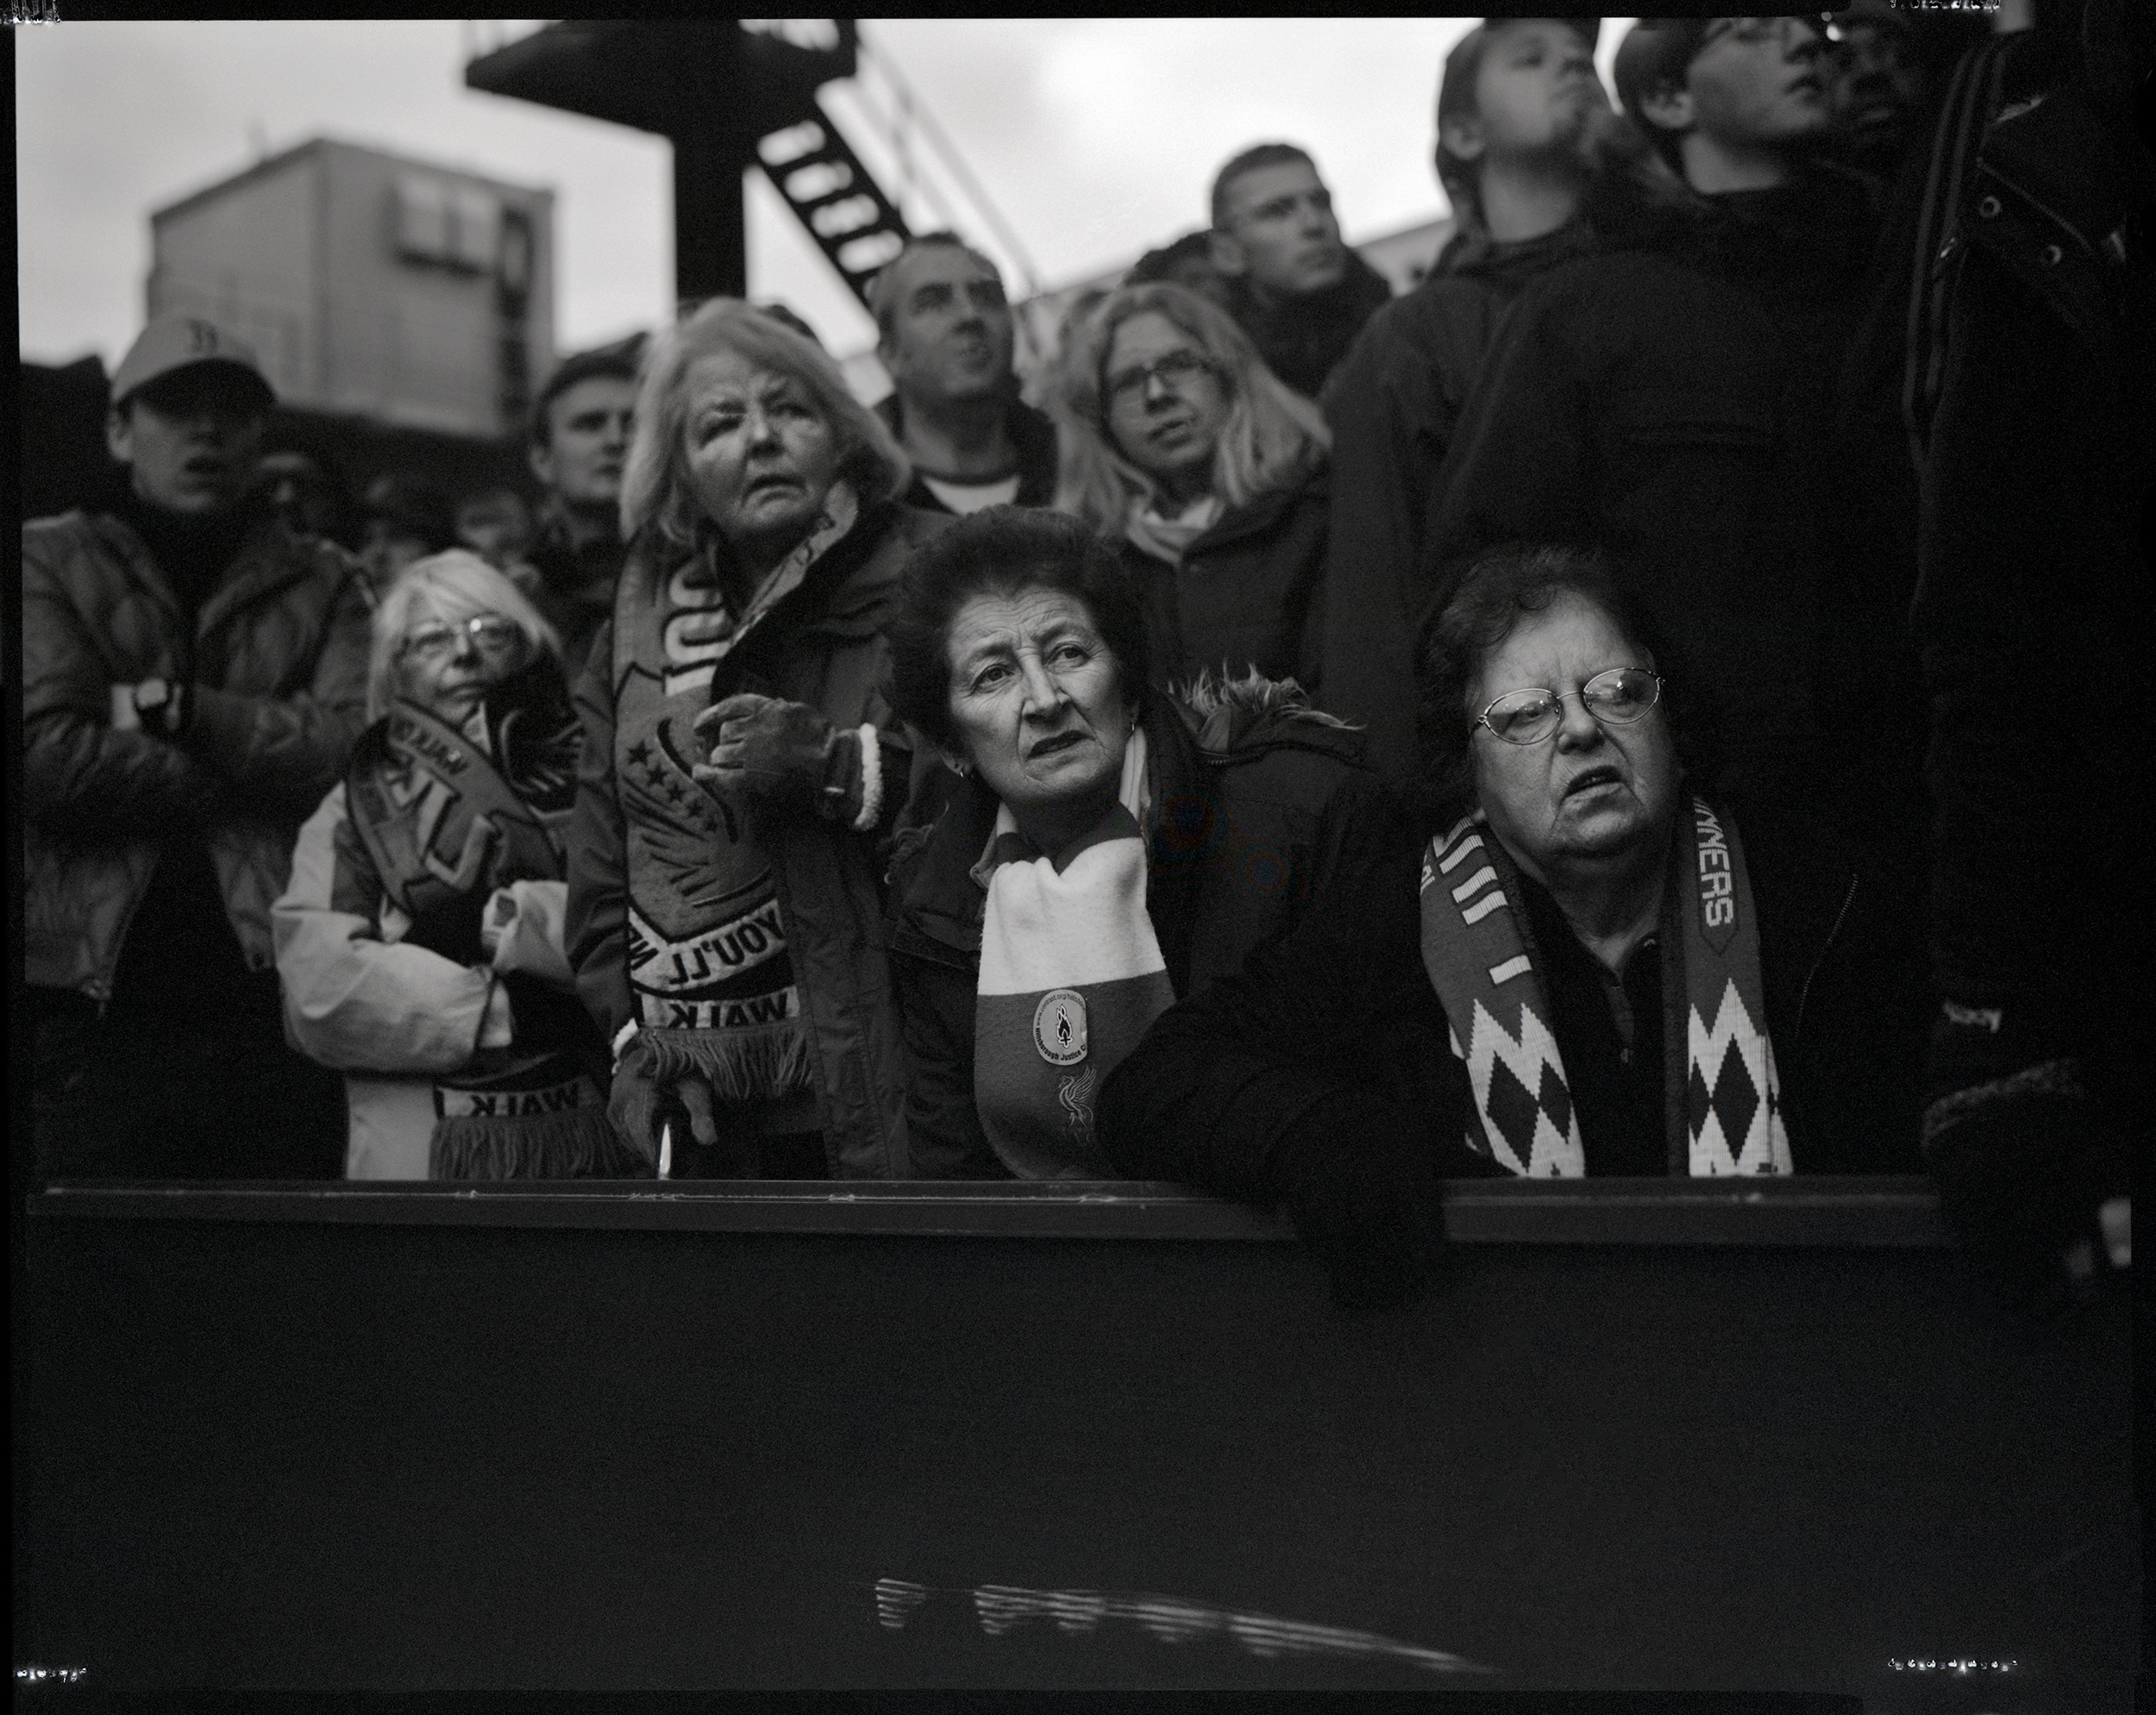 Liverpool fans, Selhurst Park, Crystal Palace 1 Liverpool 2, March 6, 2016